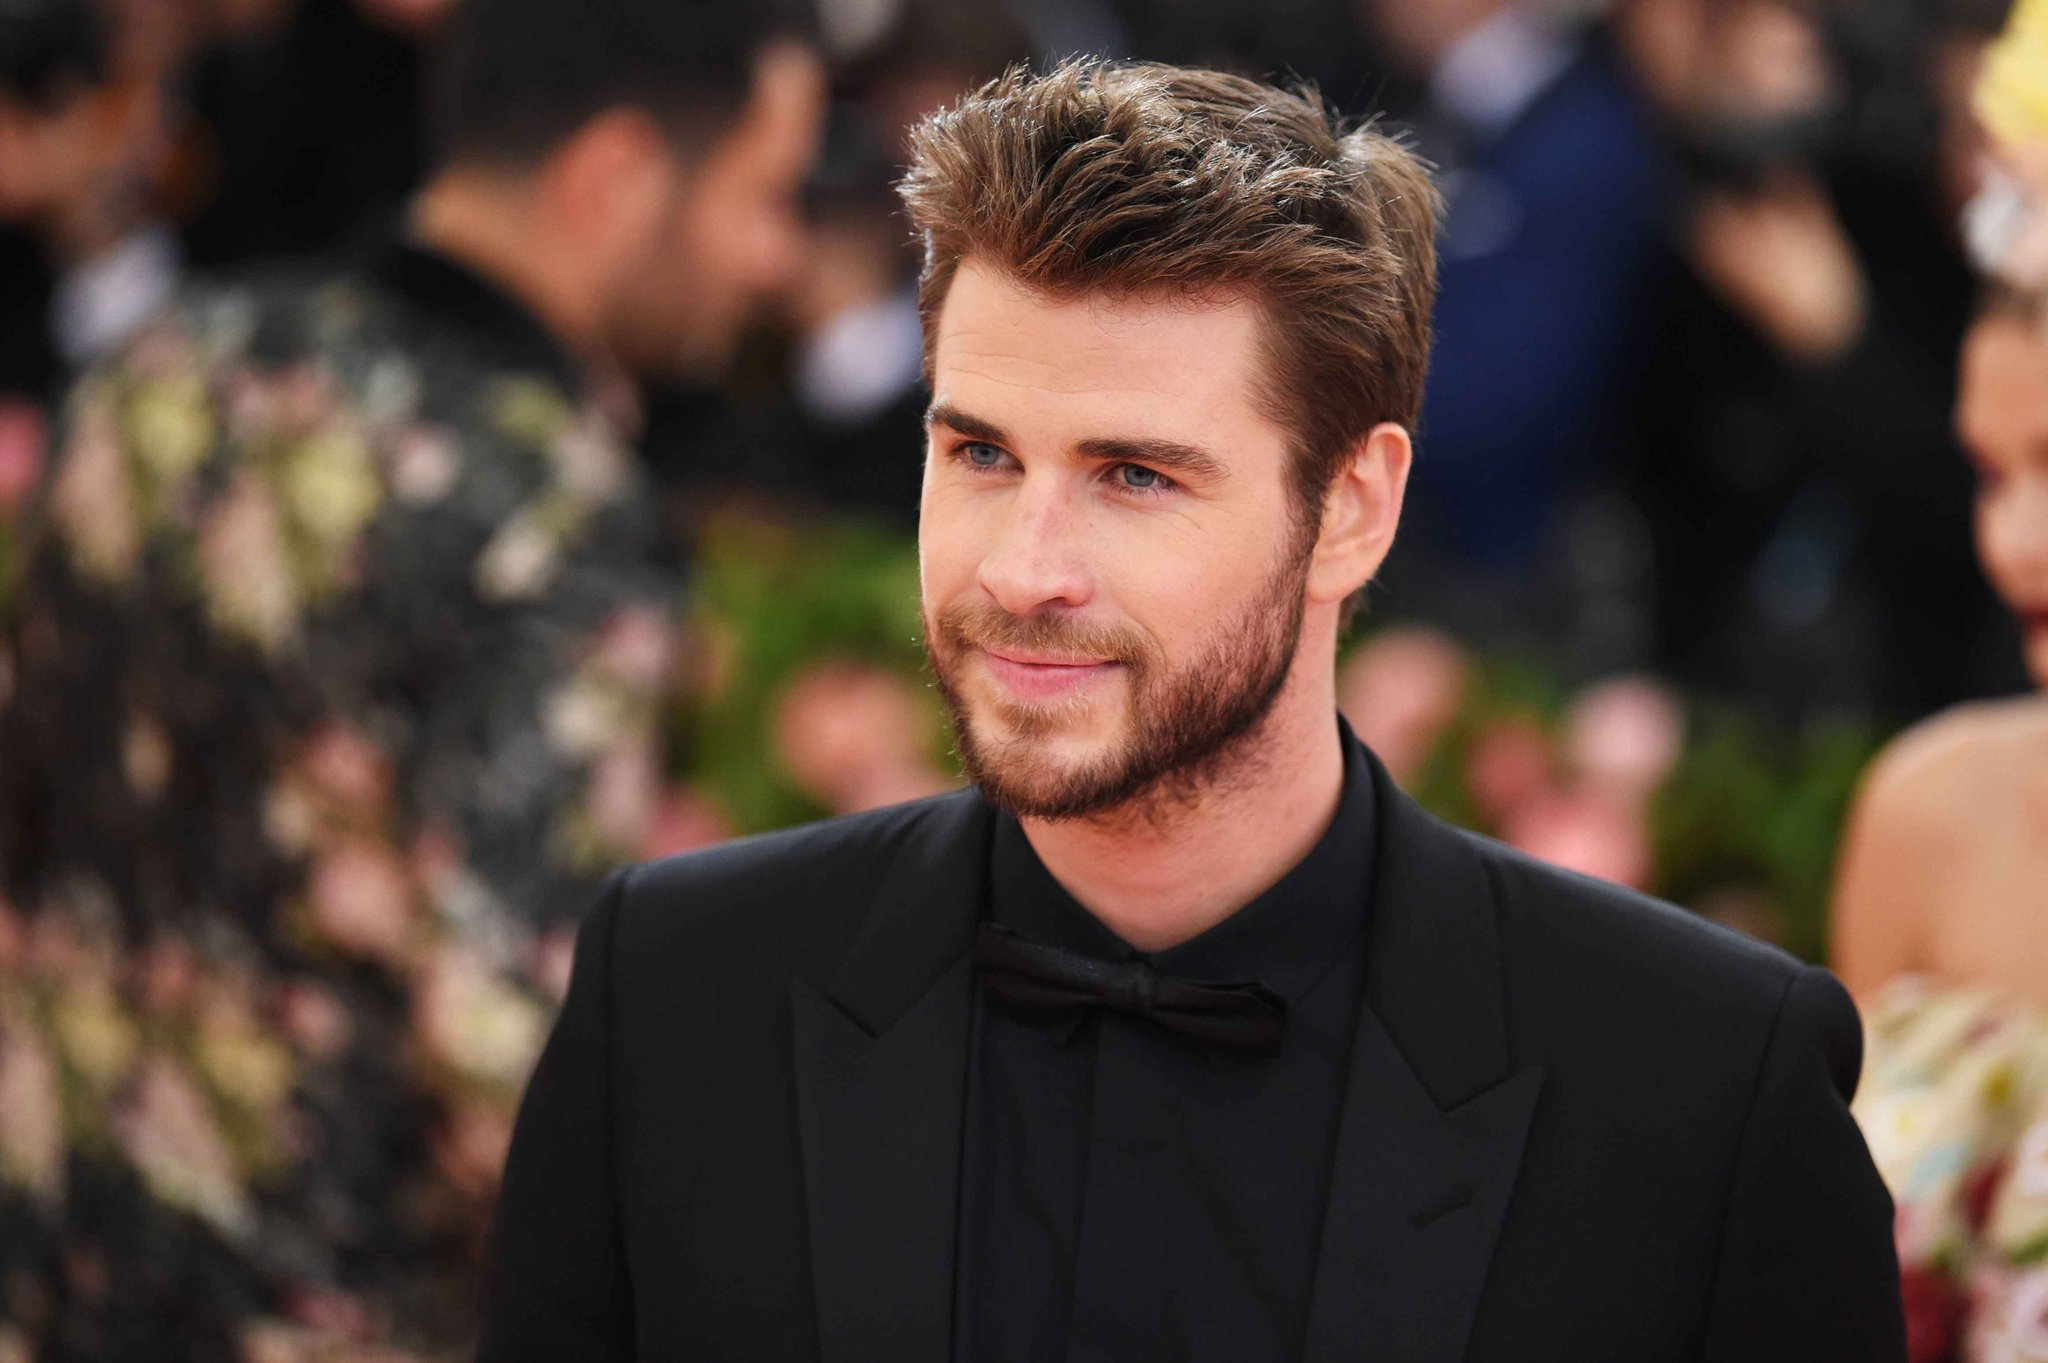 Liam Hemsworth turns 31 today, happy birthday!!  Which is your favorite film he\s in?